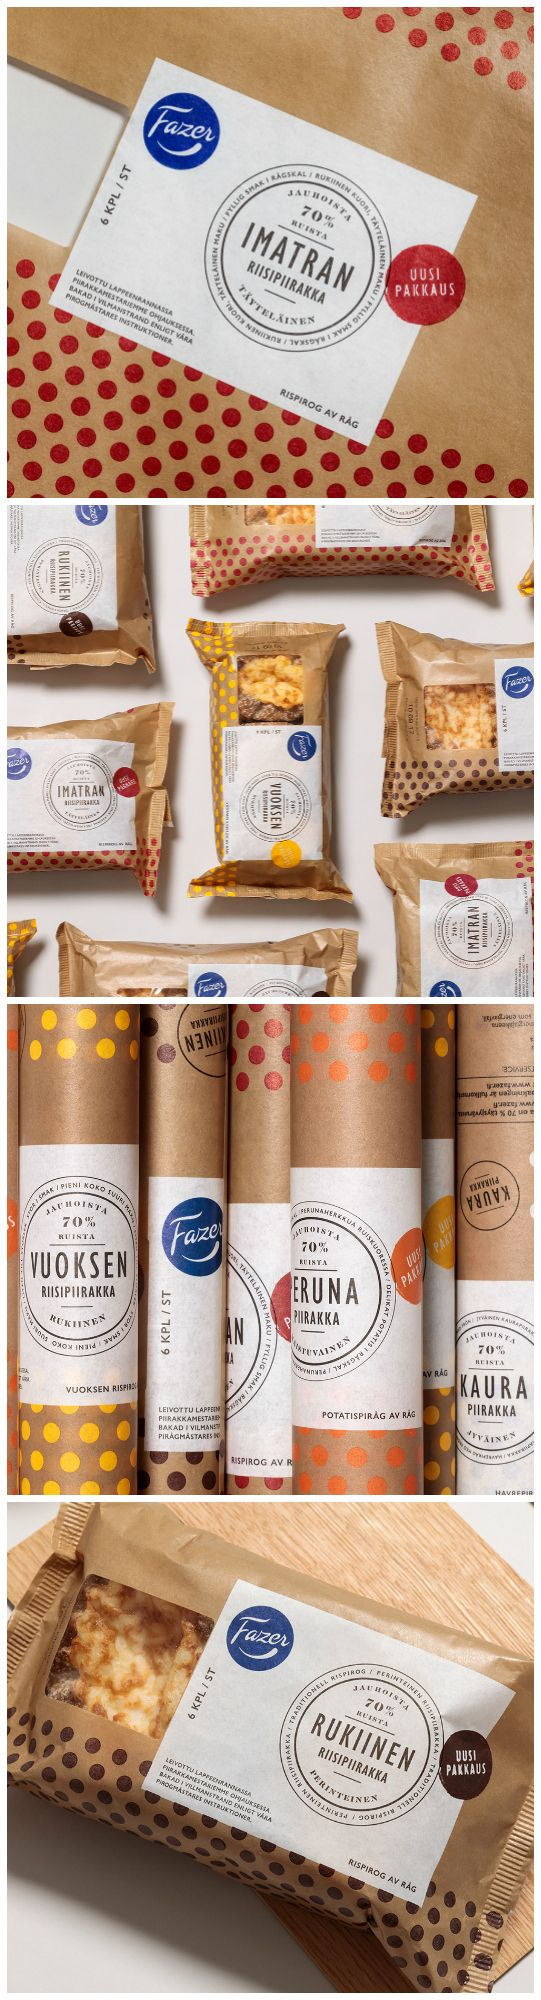 Branded Packaging Highlighting Finnish Artisan through Polka Dot Pattern Designed by: Kuudes Helsinki⠀ Project: Fazer Pastries⠀ ⠀ Category: #food #bakery ⠀